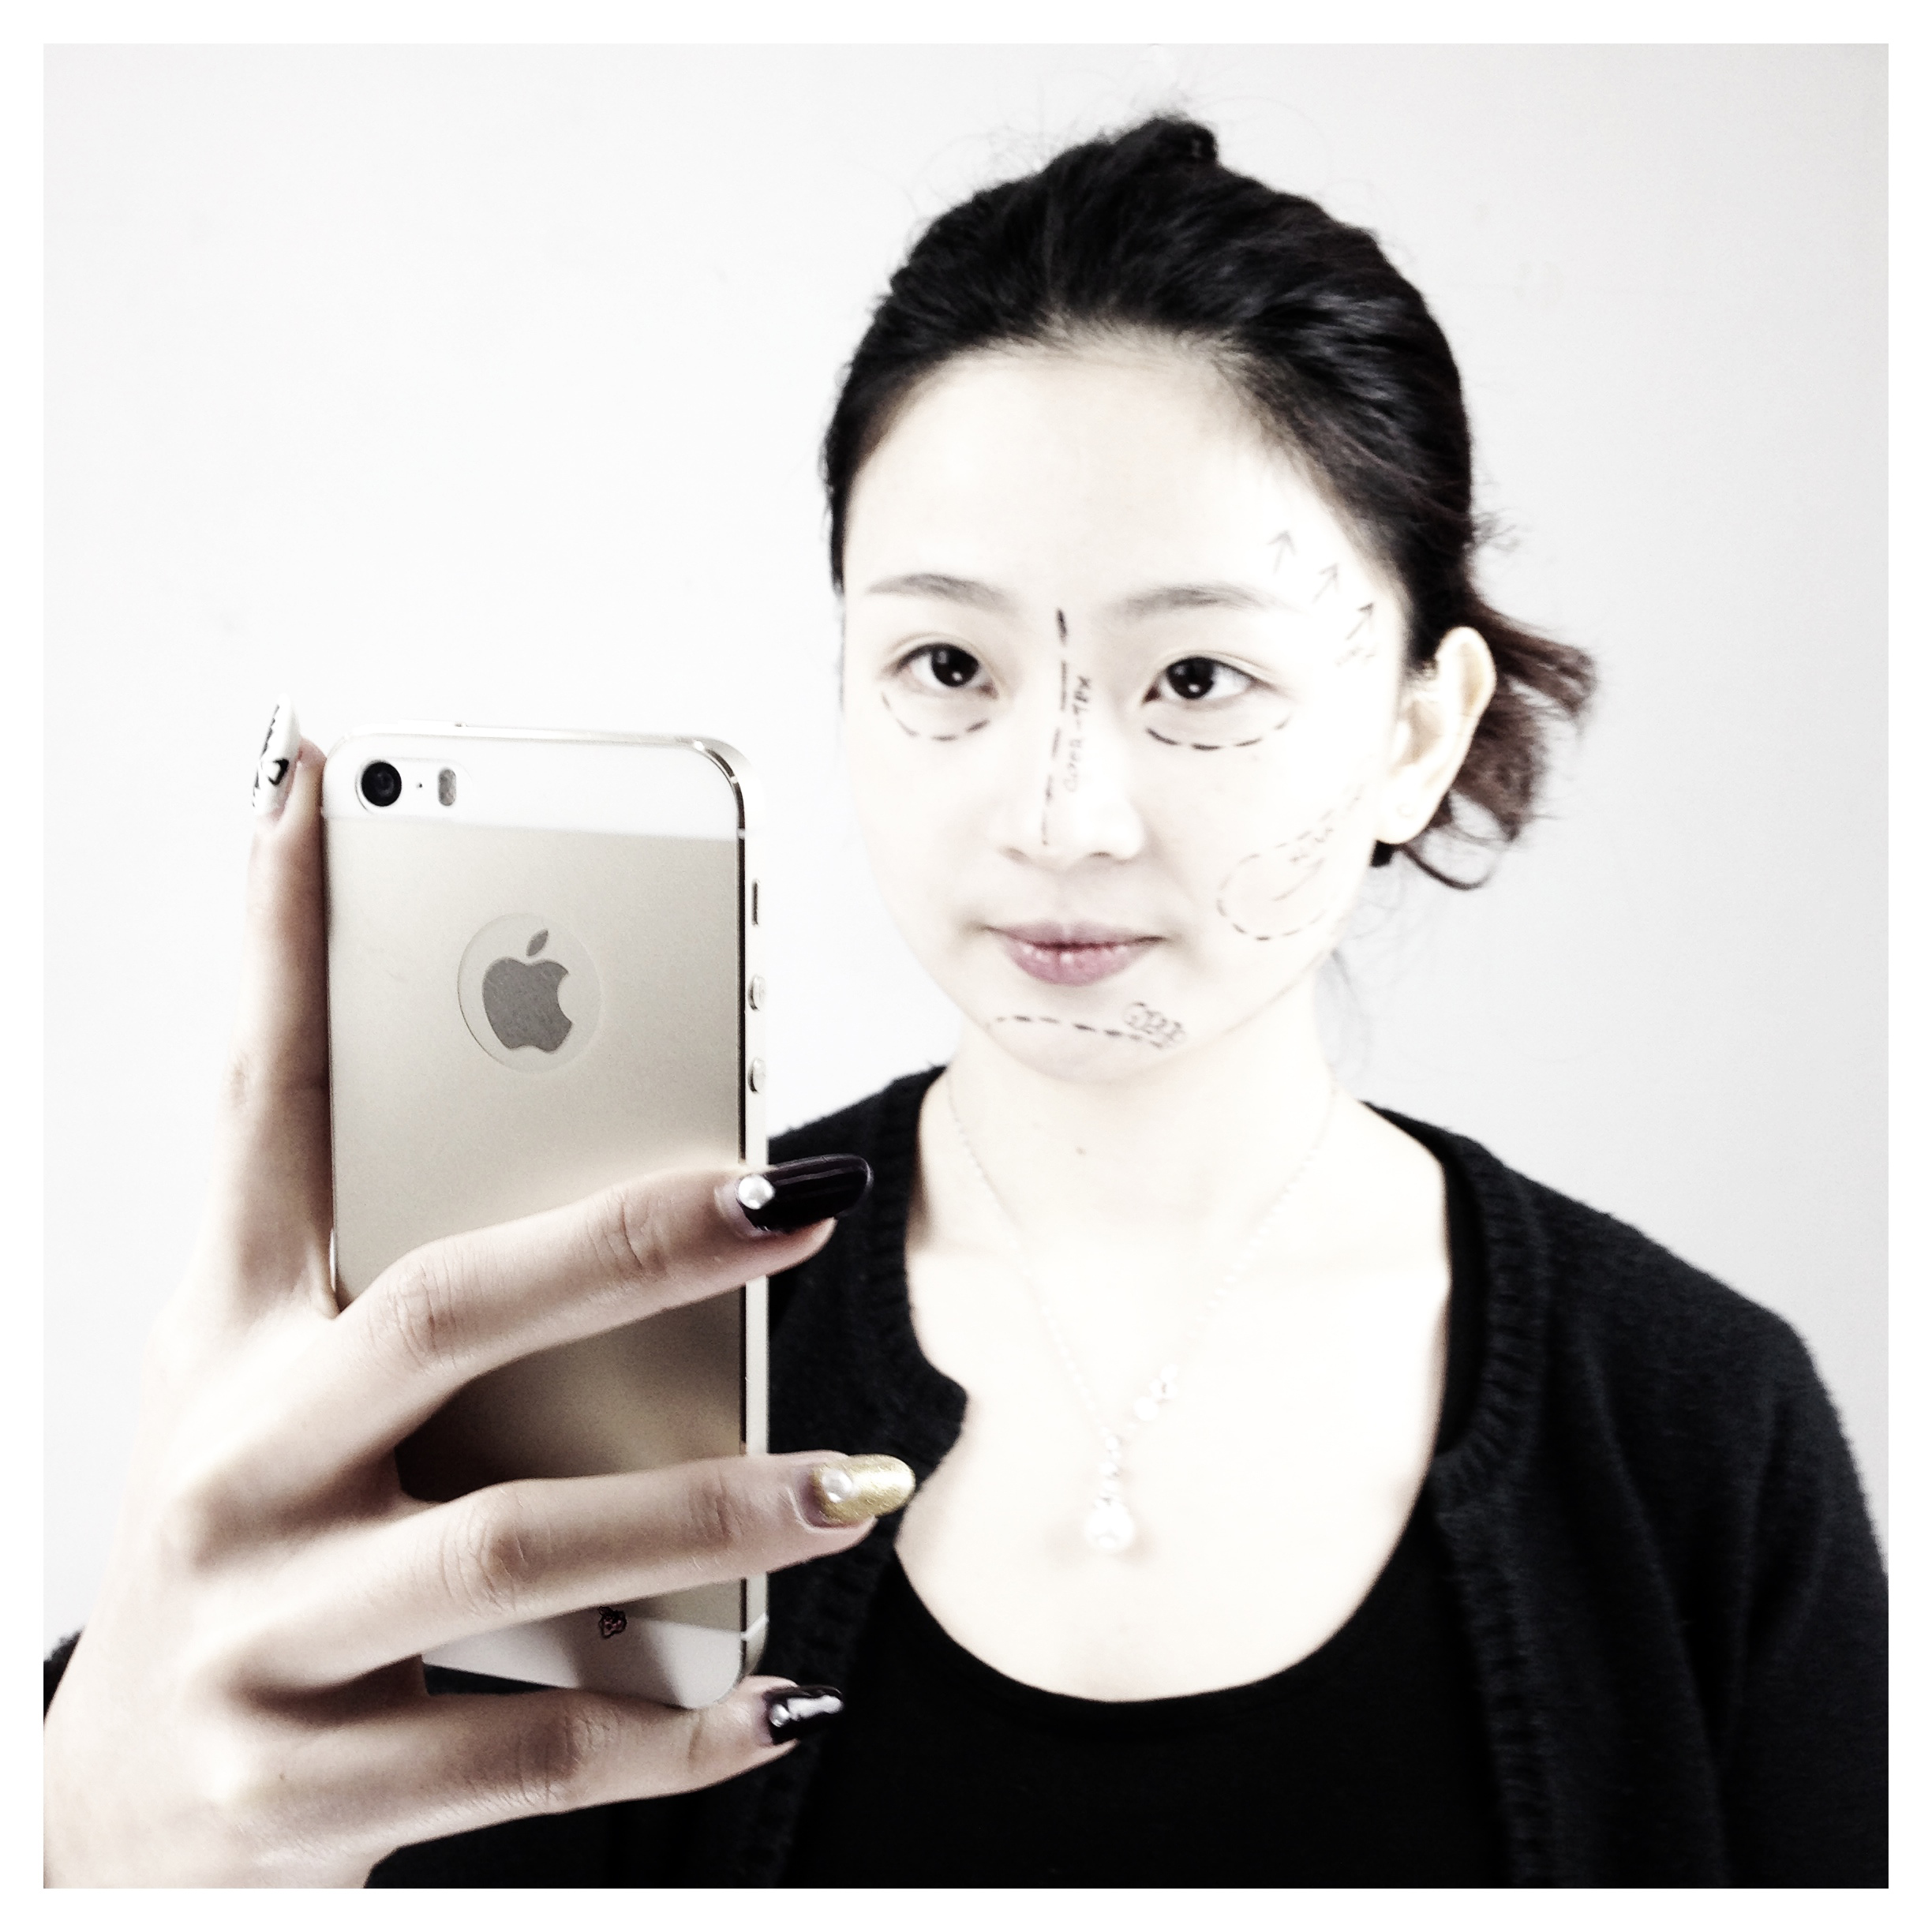 """Selfie"", A student explores the theme of self-image. Guangzhou March 2014"